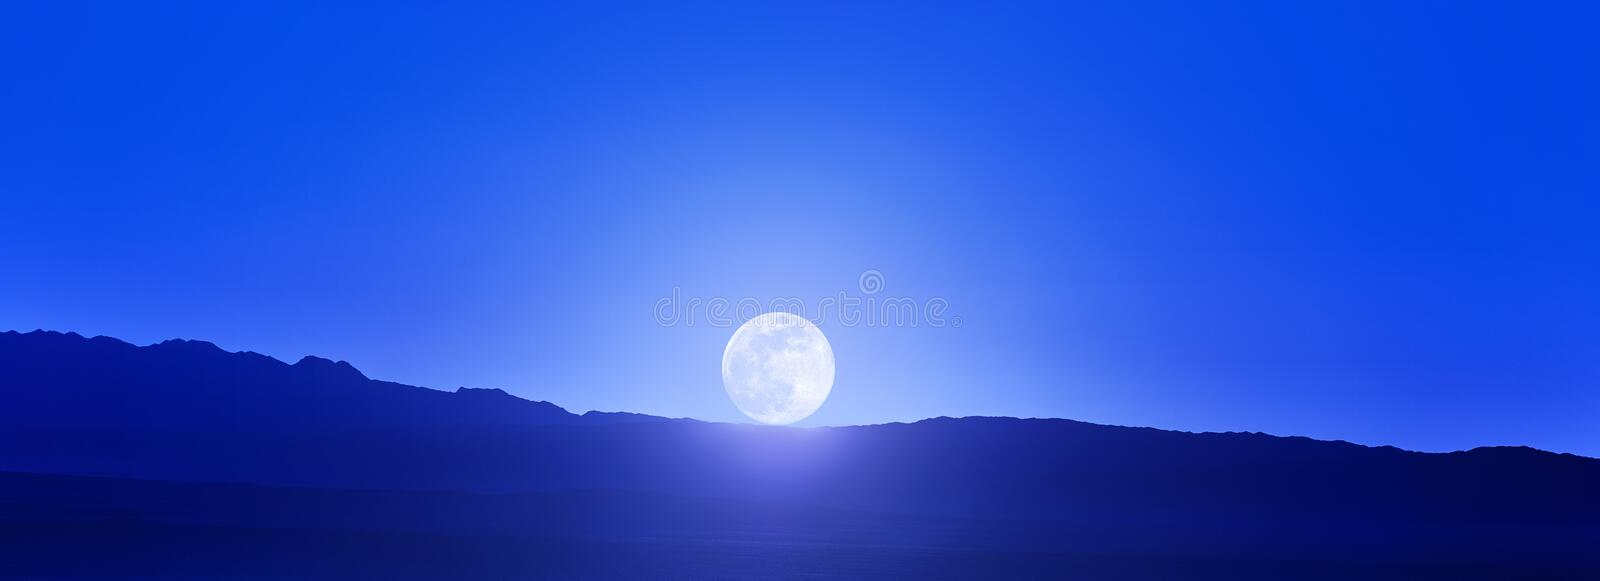 Beautiful Full Moon over the mountains. Moonrise in the mountains. Contour of the mountains and Disk of the moon.  stock images